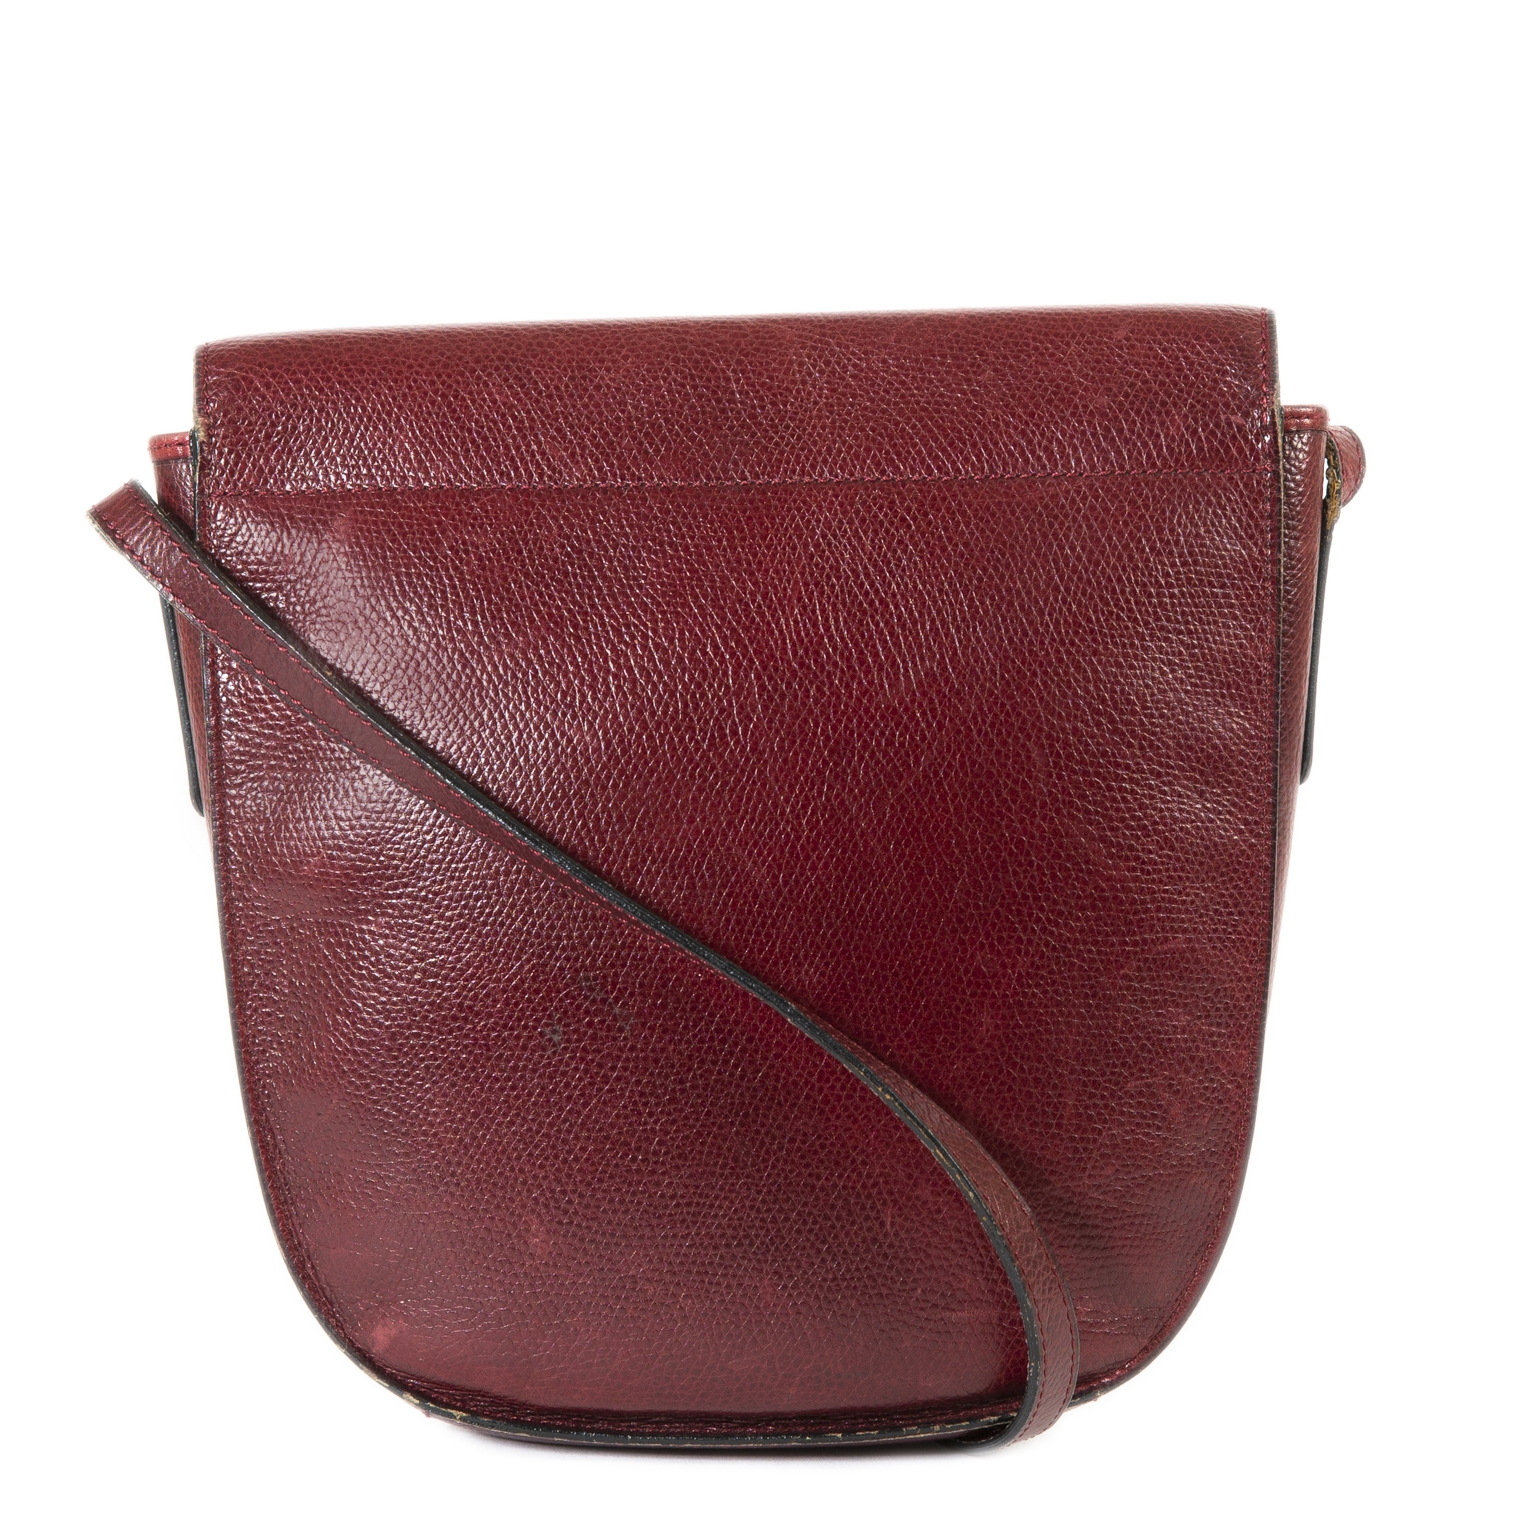 Delvaux Bordeaux Leather Crossbody Bag now for sale at labellov vintage fashion webshop belgium